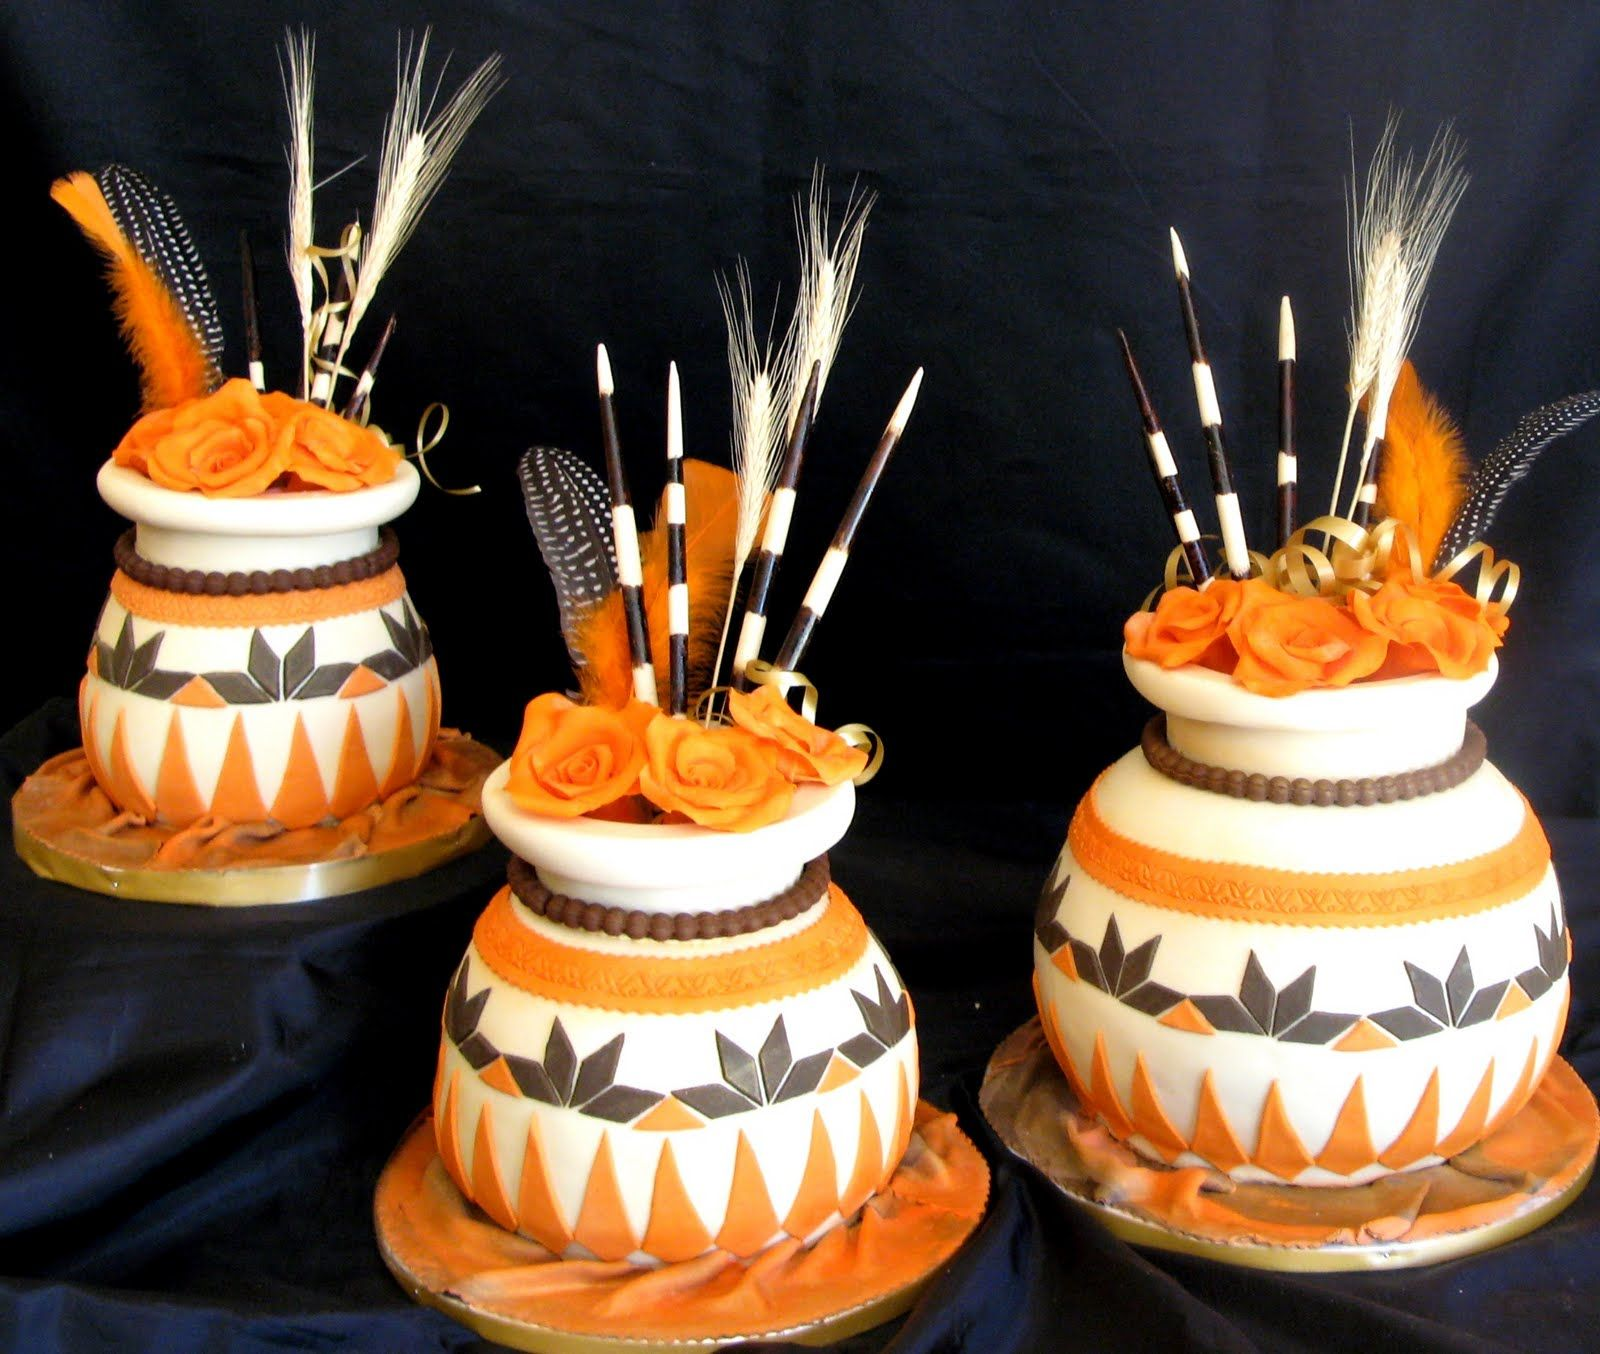 Xhosa wedding decor ideas  African Wedding Cakes dilshil For more great ideas and